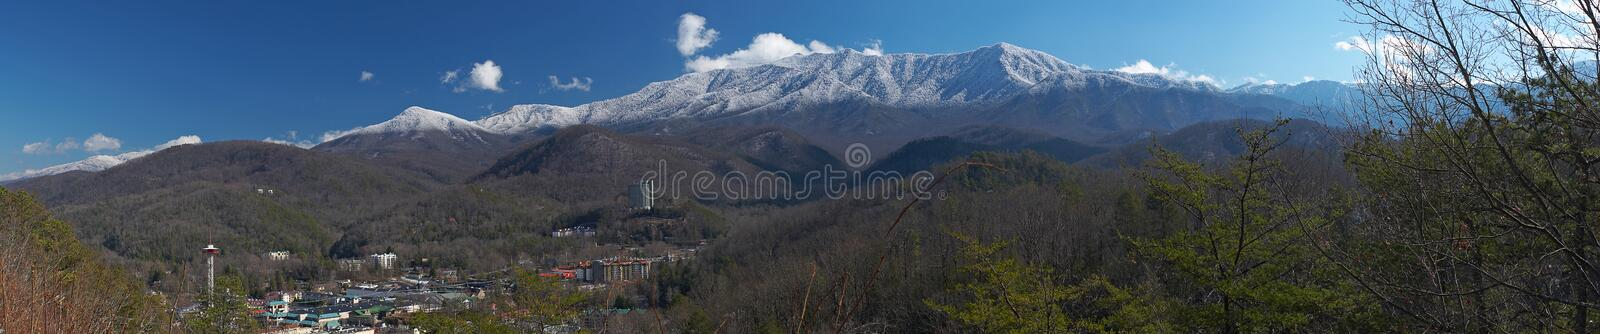 Download Great smoky mountains pano stock image. Image of town, great - 858415